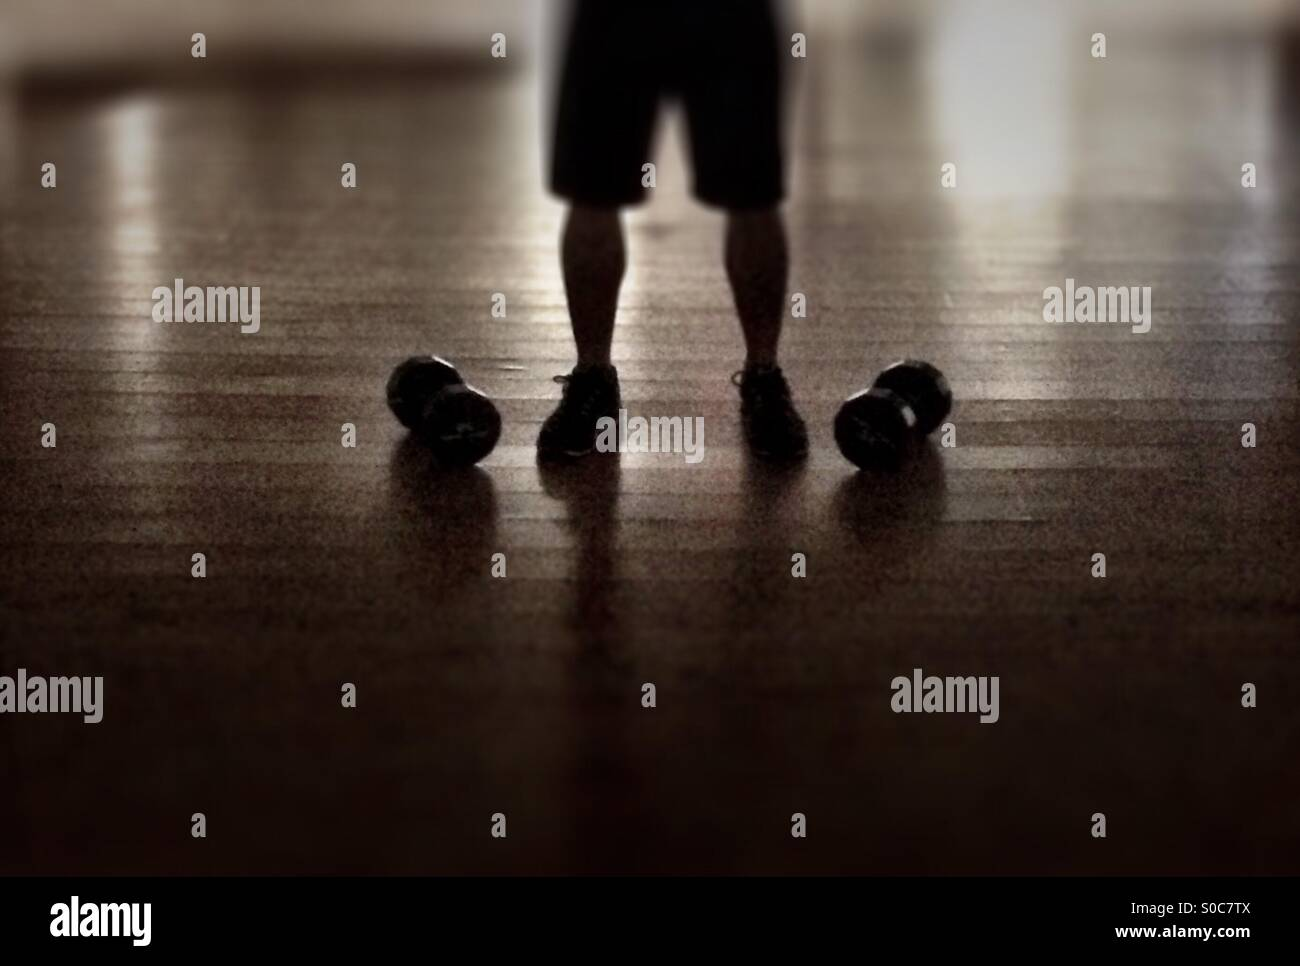 Man with barbells - Stock Image